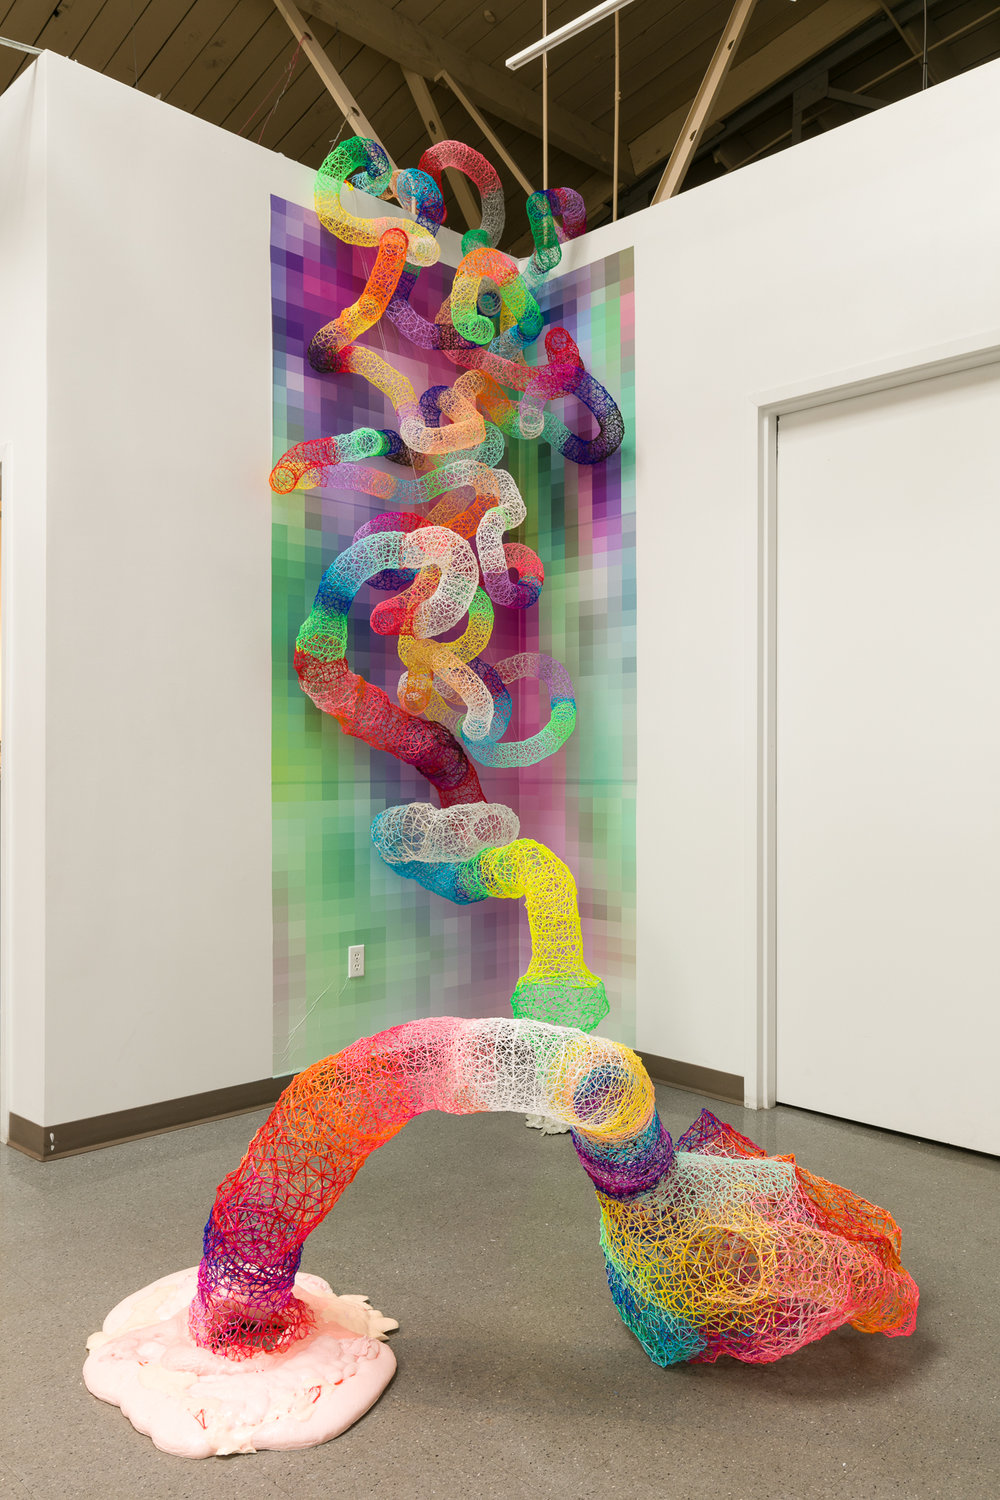 "'System Virtue' 2018, 132"" x 72"" x 60"" ABS filament, Digital Print on Adhesive Vinyl, Flex Foam, Pigment  Installation part of 'Reclamation' 965 Gallery, Denver CO"